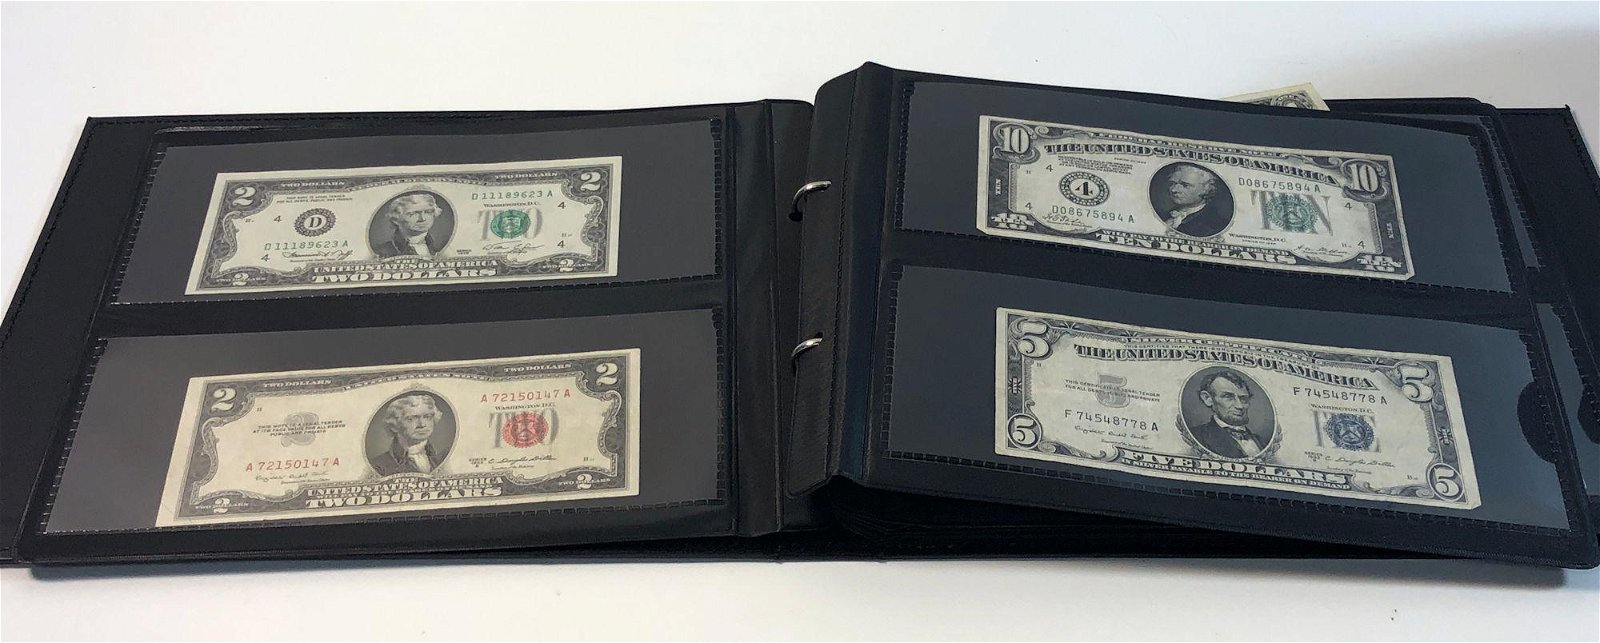 U.S. AND FOREIGN PAPER CURRENCY IN ALBUM